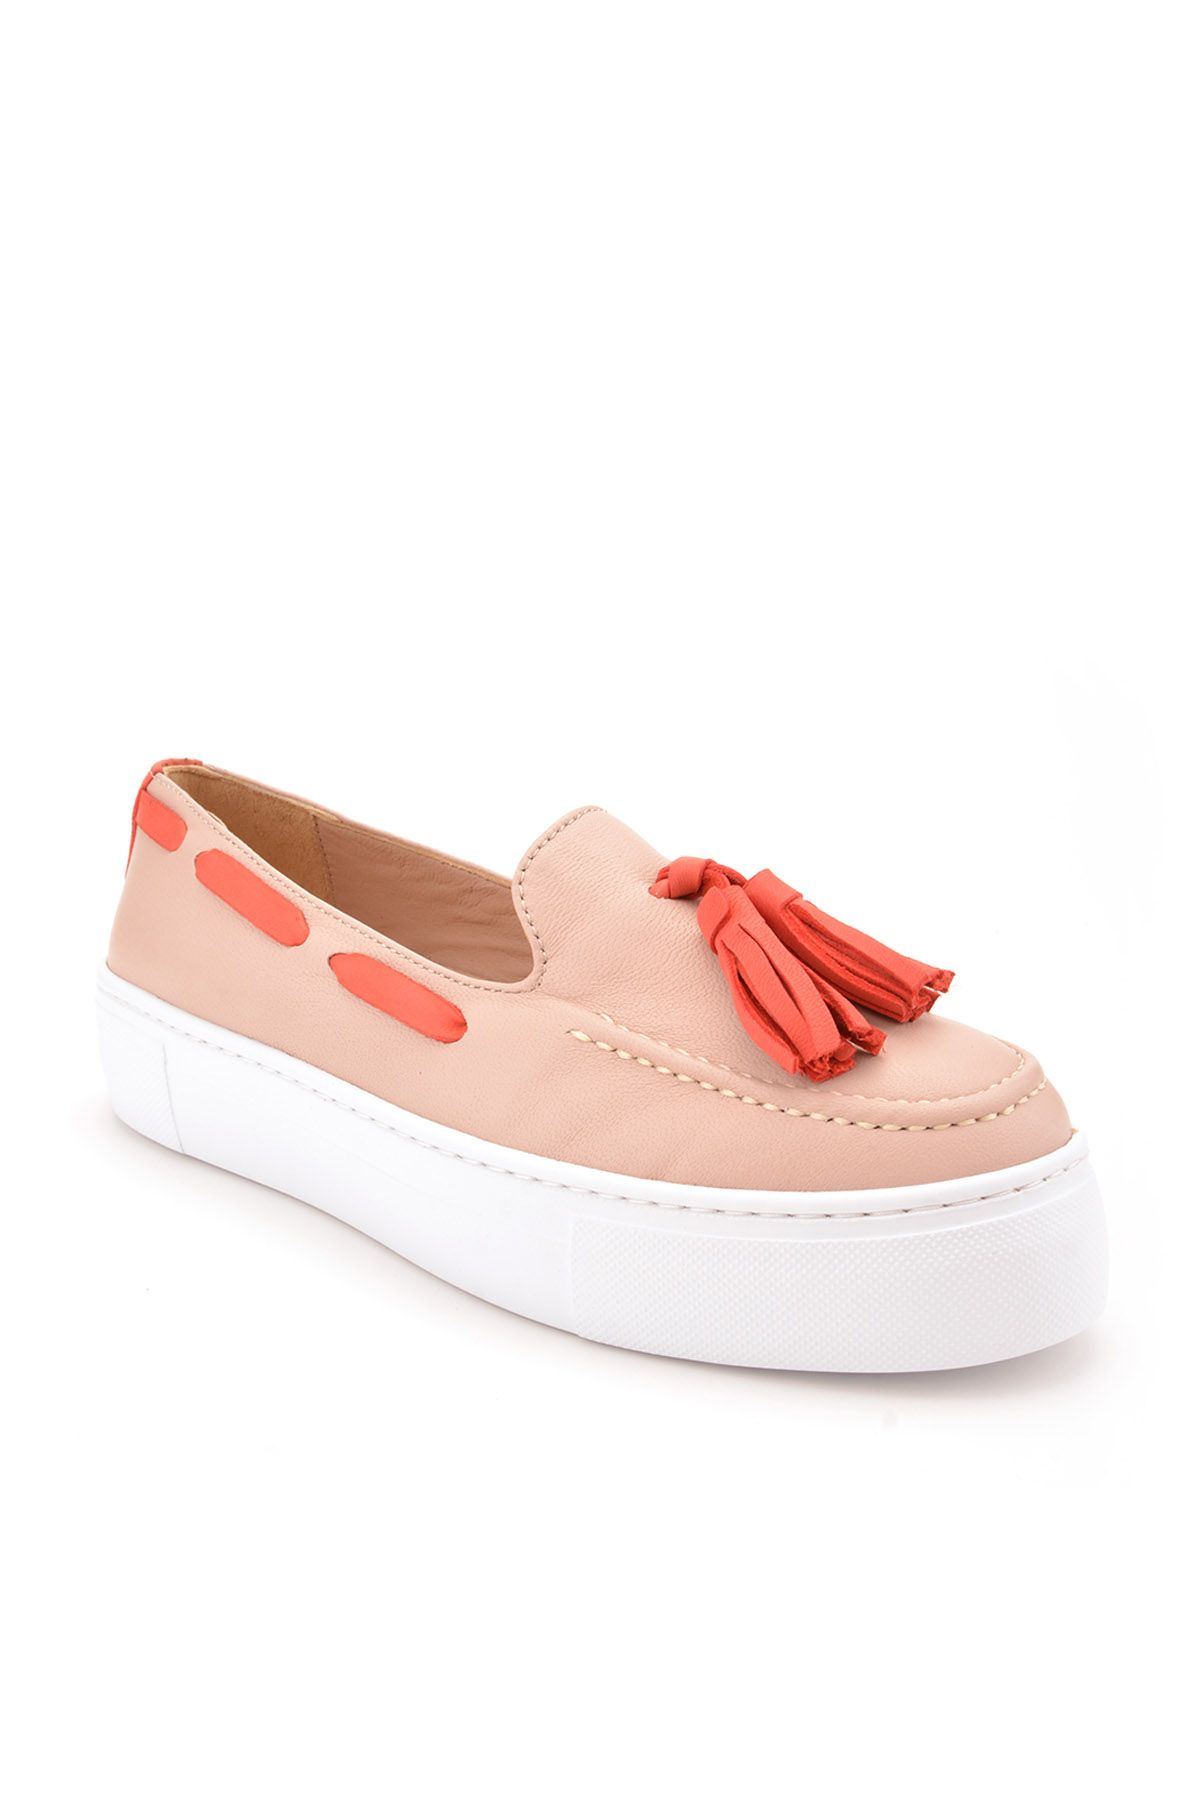 Pegia Pernety Casual Shoes From Genuine Leather Cream